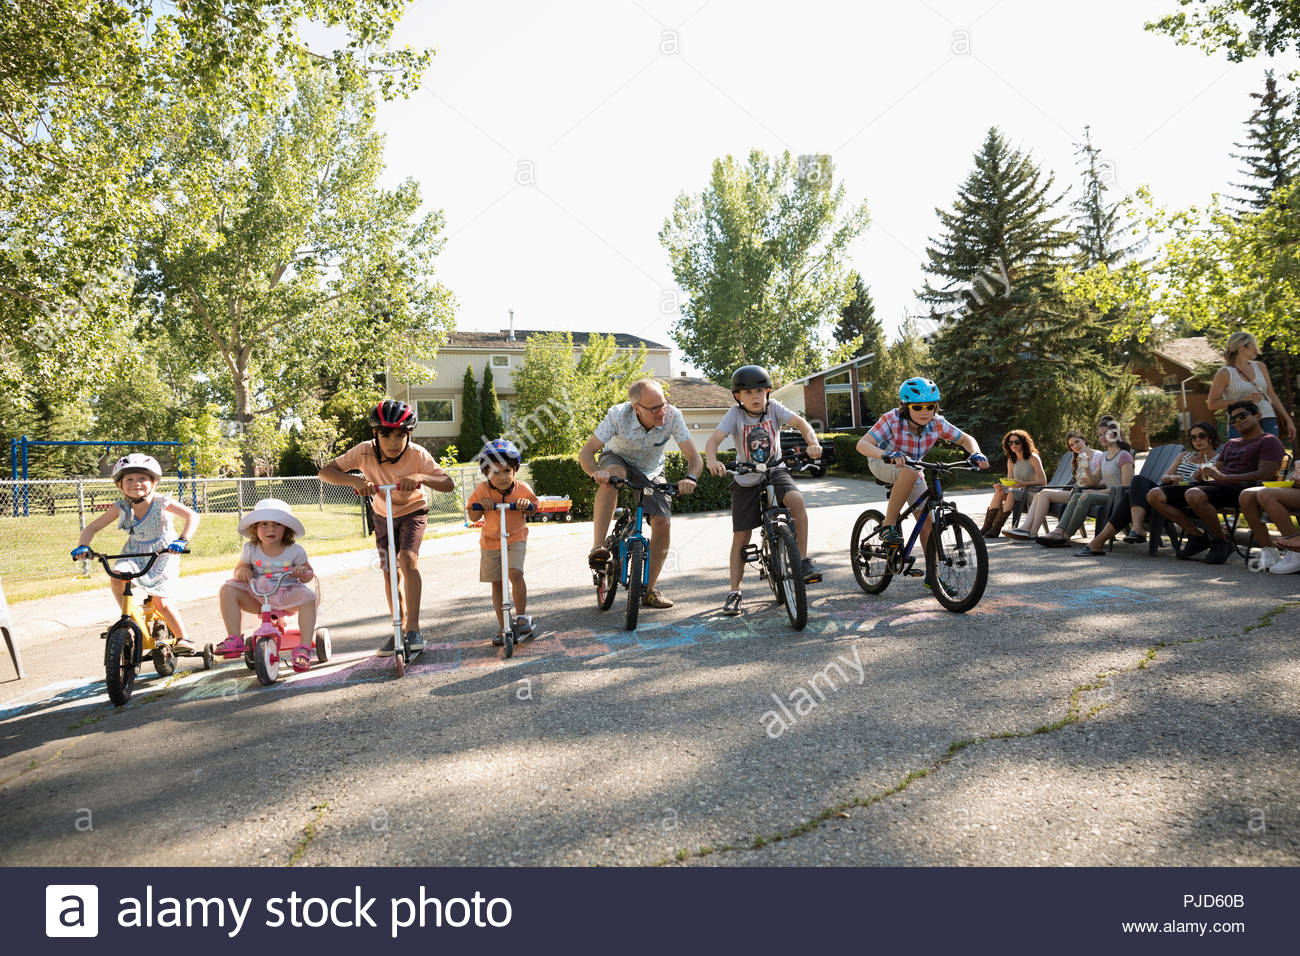 Kids ready for bike race at starting line at summer neighborhood block party - Stock Image